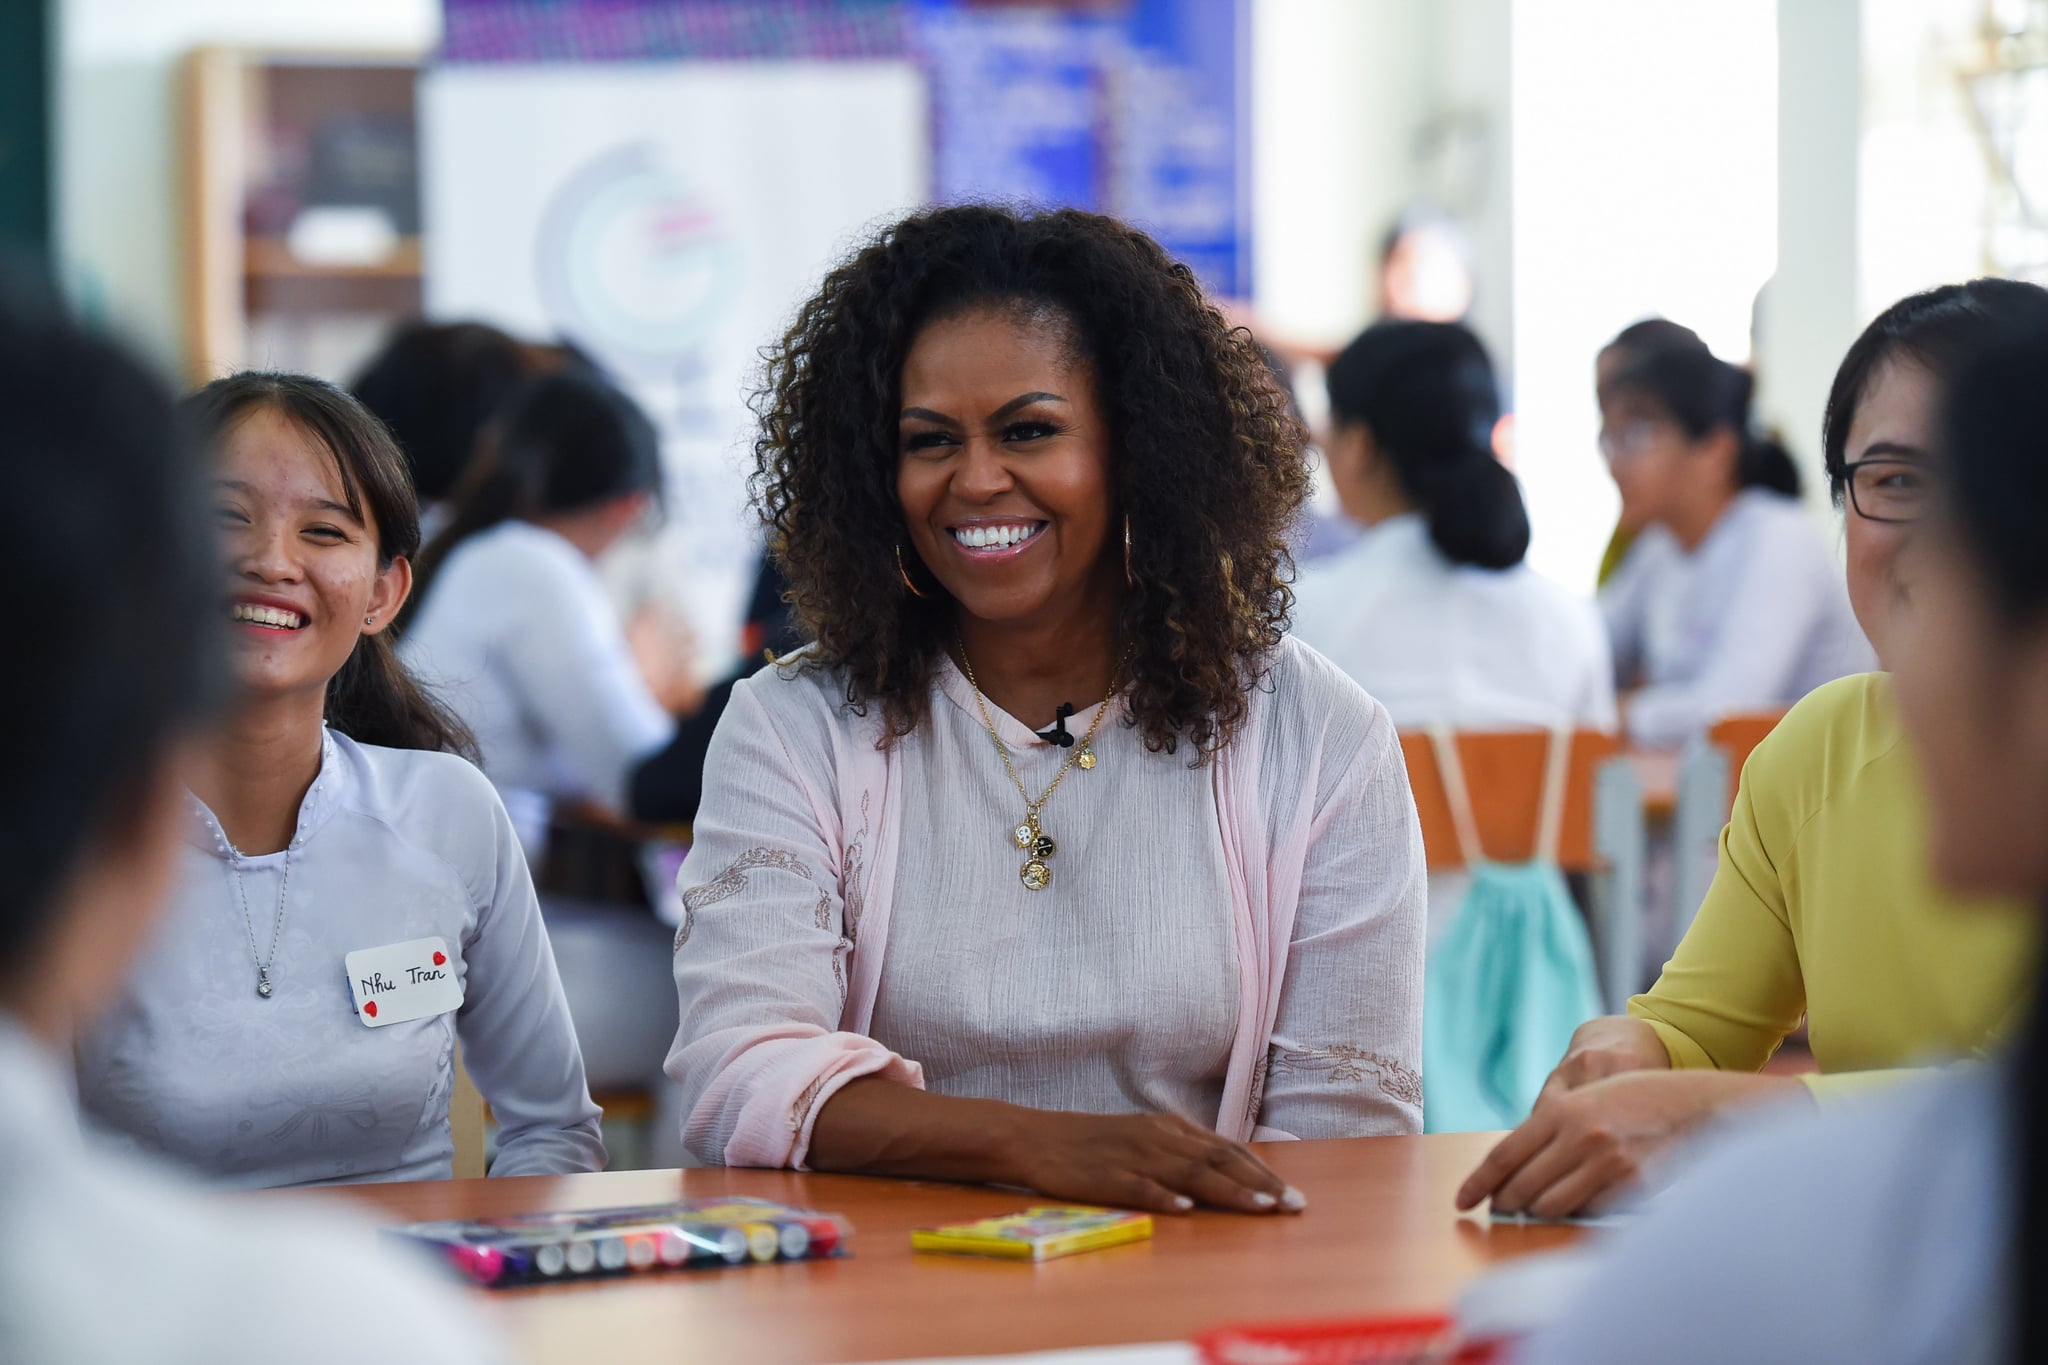 Former US First Lady Michelle Obama meets Vietnamese students in Can Giuoc district, Long An province on December 9, 2019. - Michelle Obama and Julia Roberts visit to promote girls' education in Vietnam. (Photo by Nhac NGUYEN / AFP) (Photo by NHAC NGUYEN/AFP via Getty Images)